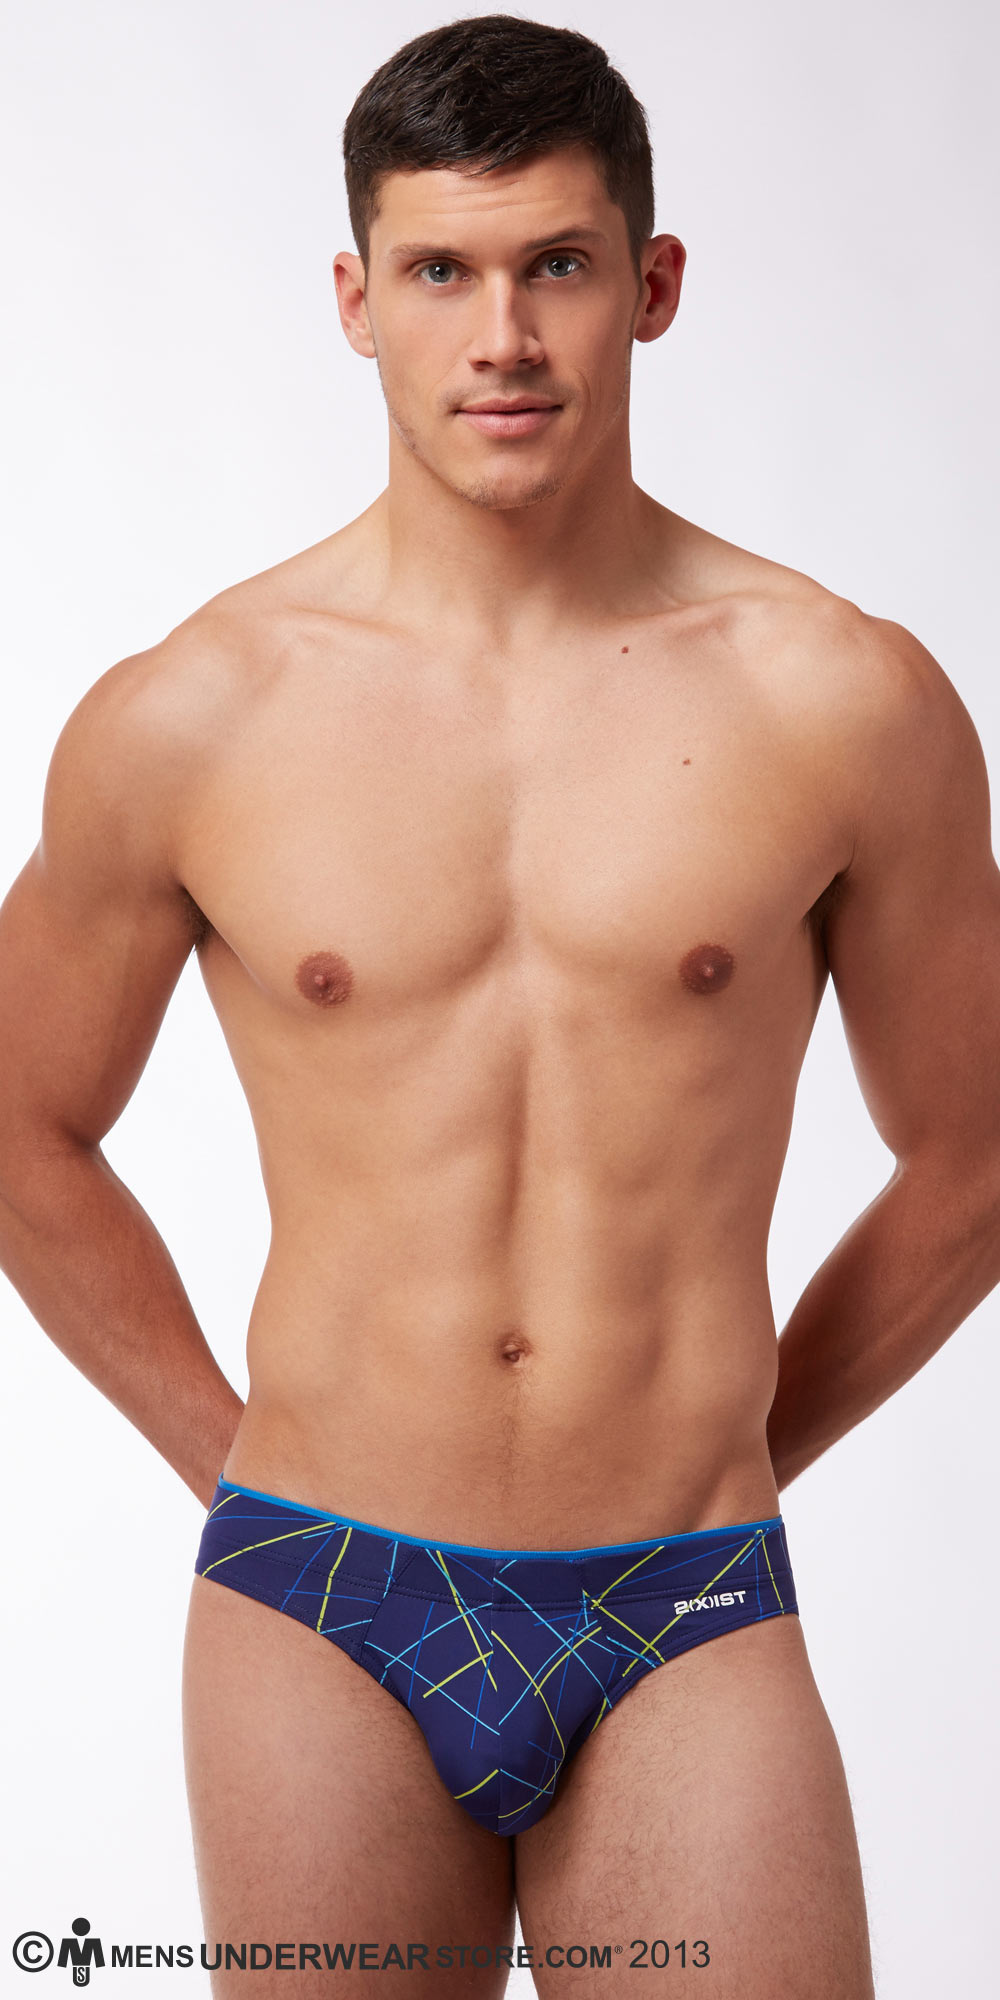 Mensuas is one of the leading men's underwear and swimwear online stores providing high quality customer service and fast shipping. We have a wide range of branded men's bikinis, briefs, boxers, men's thongs, trunks and men's G-strings at reasonable prices. This is the best online store for your underwear and swimwear needs.